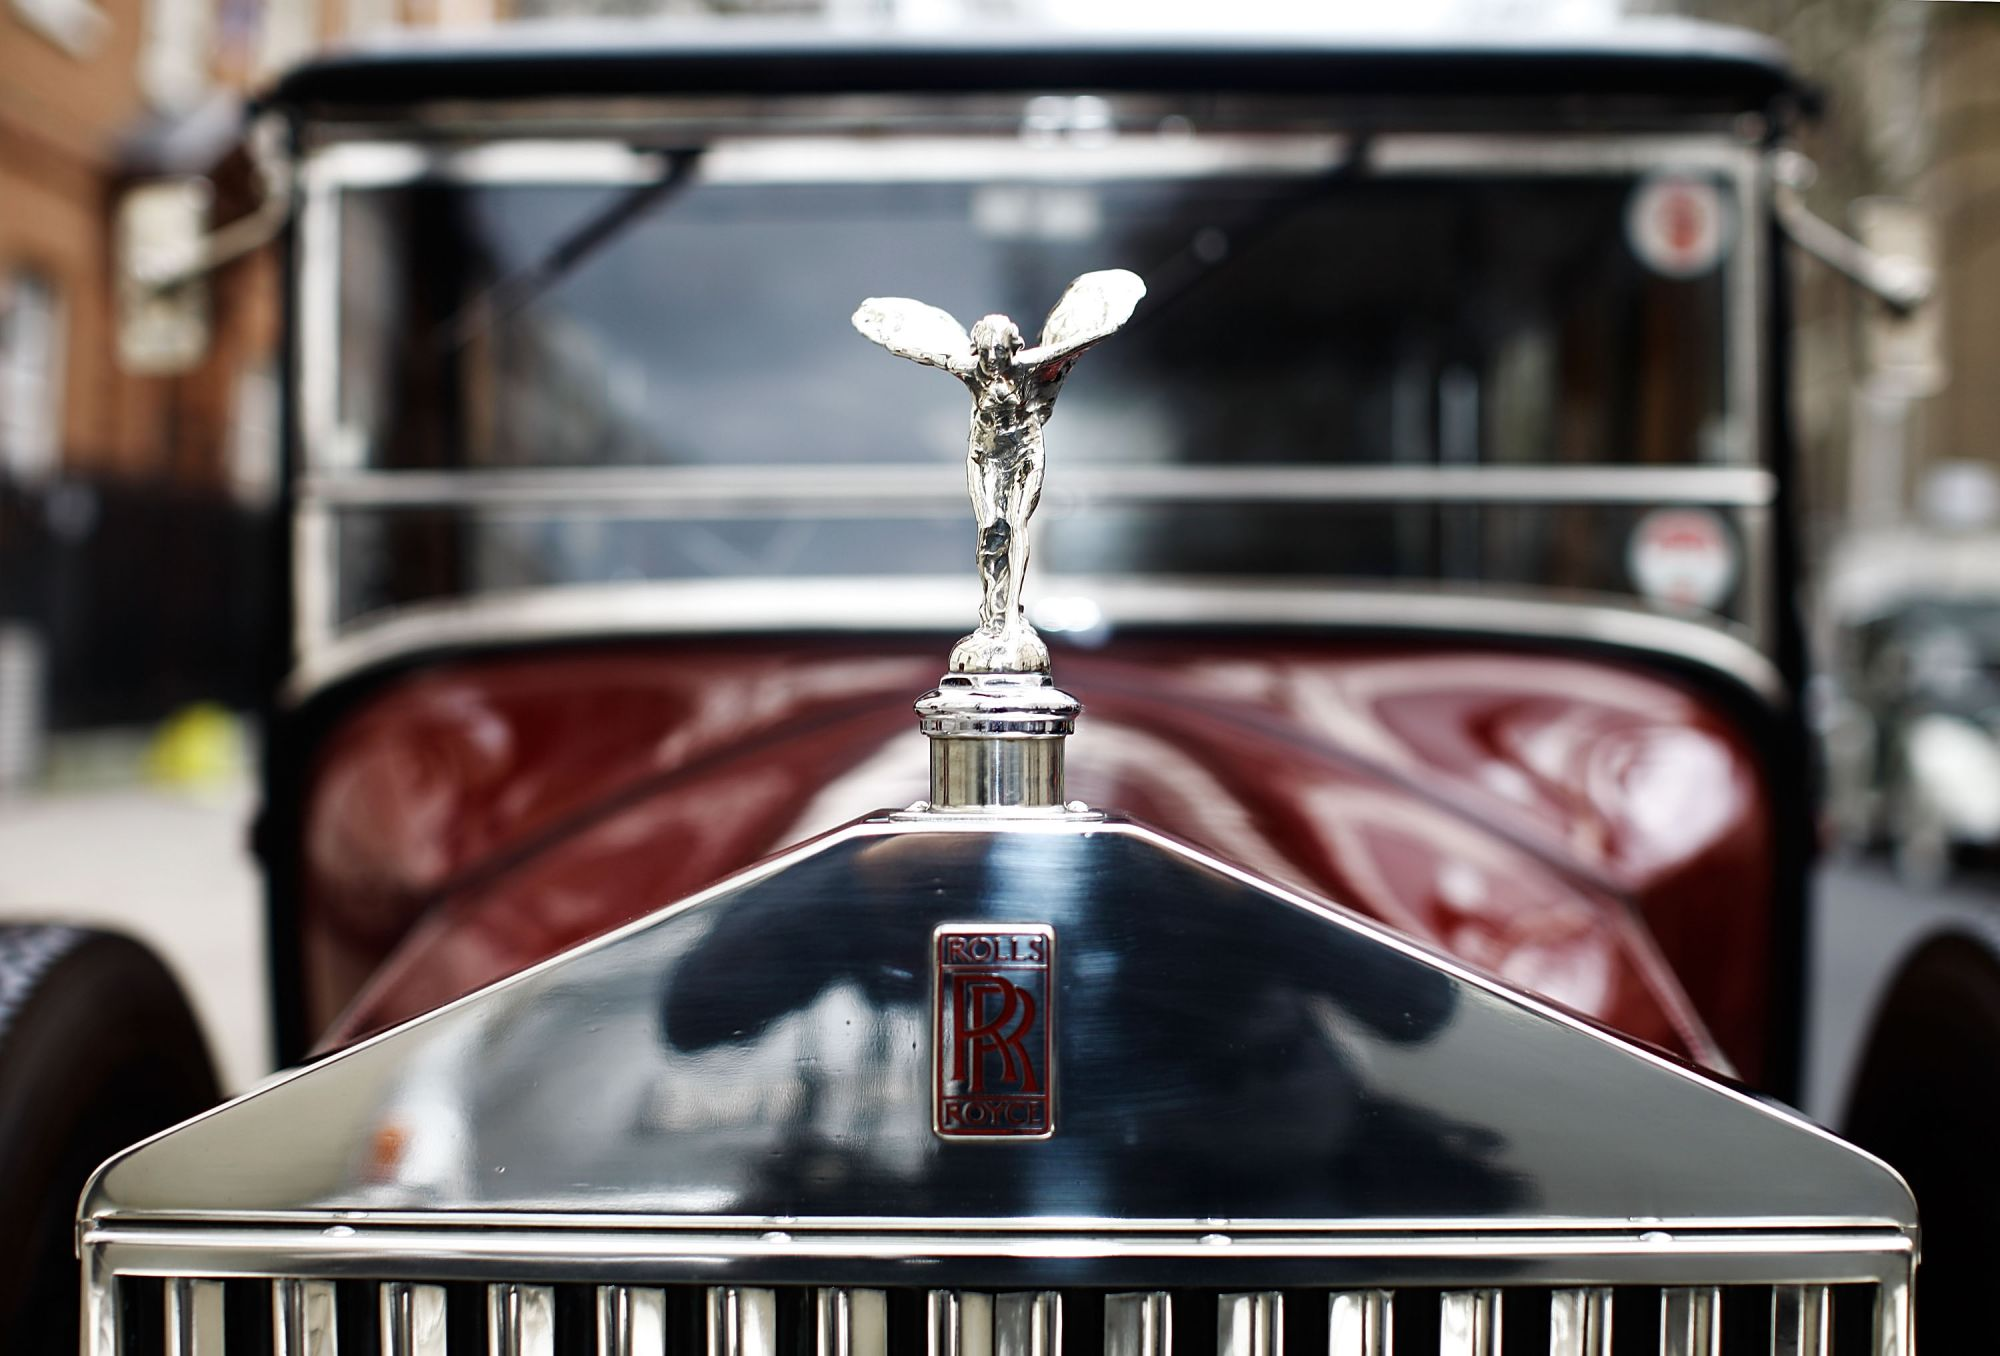 LONDON, ENGLAND - FEBRUARY 06:  Vintage Rolls Royce cars line up before a centenary parade on February 6, 2011 in London, England. Rolls Royce is celebrating the 100th anniversary of the introduction of the ÔSpirit of EcstasyÕ or ÔFlying LadyÕ icon that is found on the front of their cars.  (Photo by Matthew Lloyd/Getty Images)